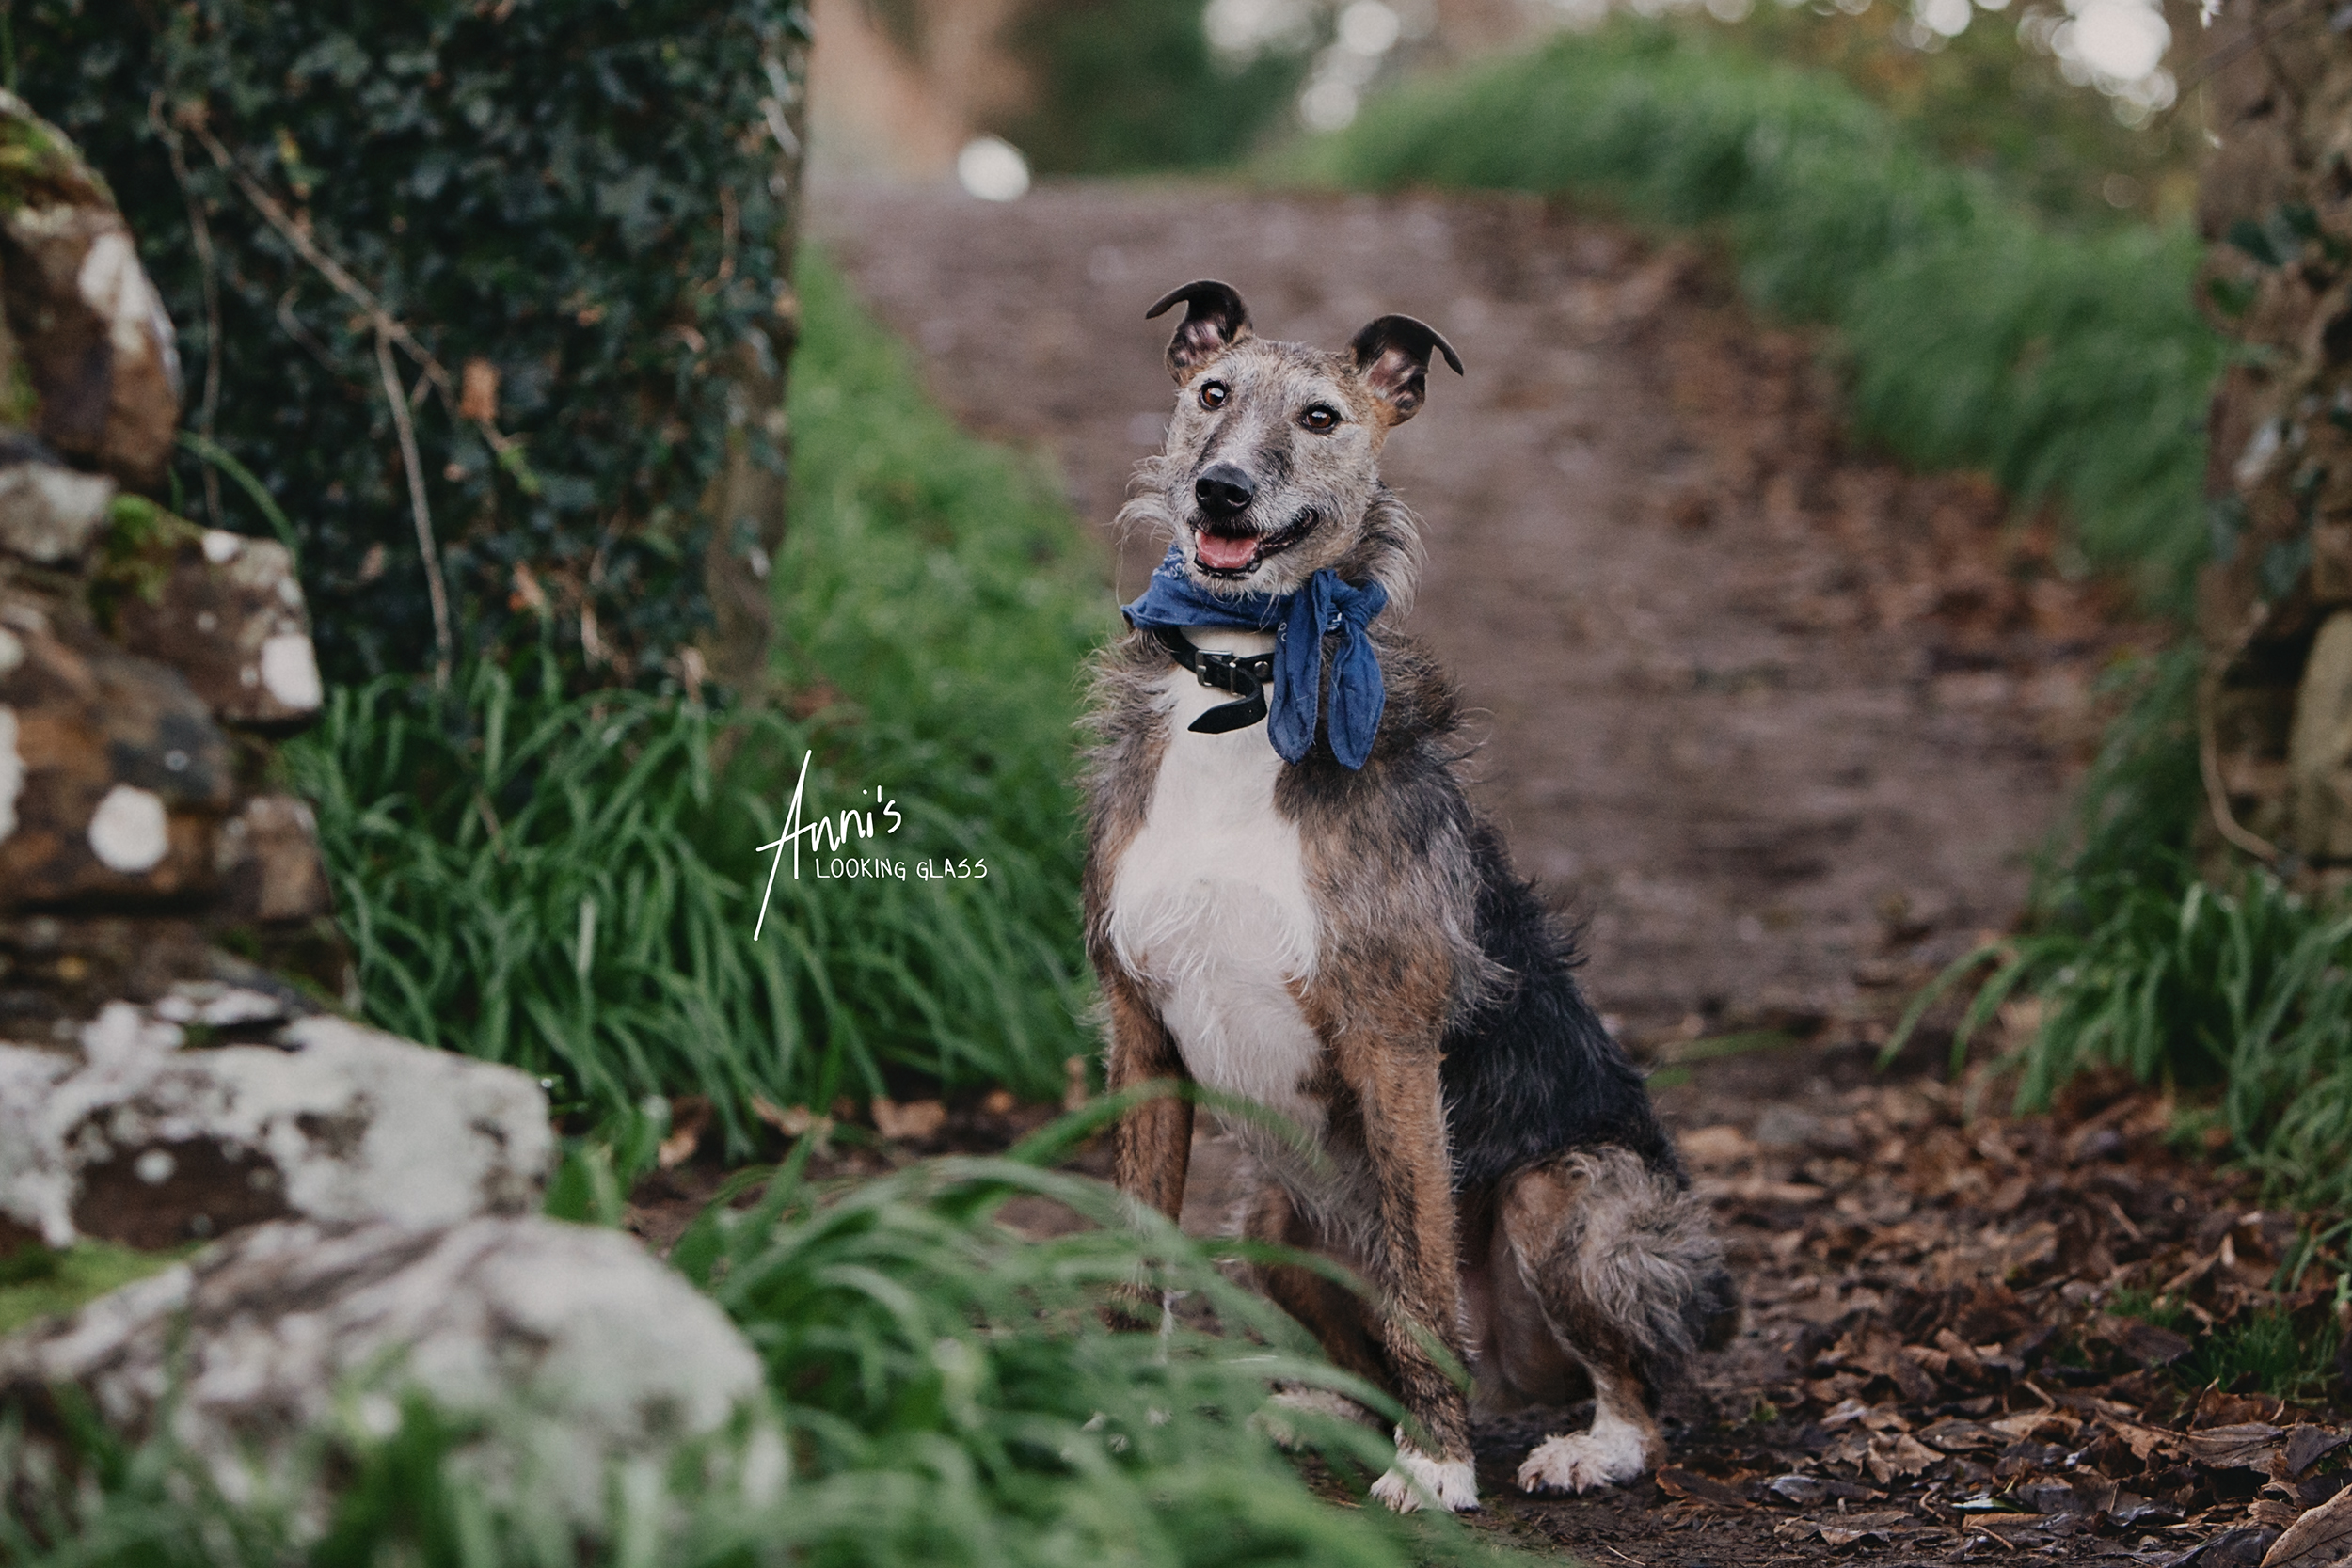 Dog Photographer Loughborough, Leicestershire: A greyhound wearing a blue bandana sitting on a footpath in Co. Waterford, Ireland. 24th April 2018